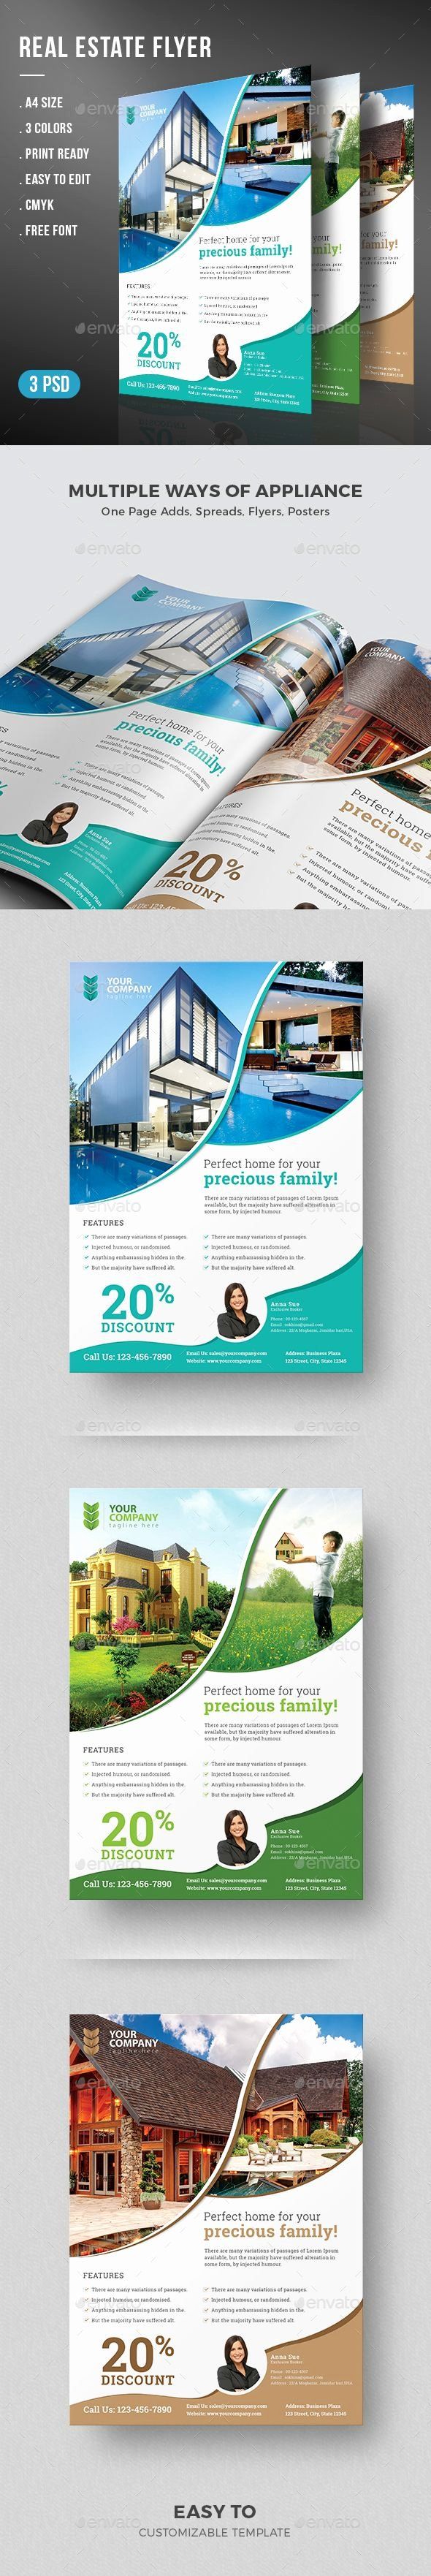 Real Estate Marketing Flyers New Best 25 Marketing Flyers Ideas On Pinterest